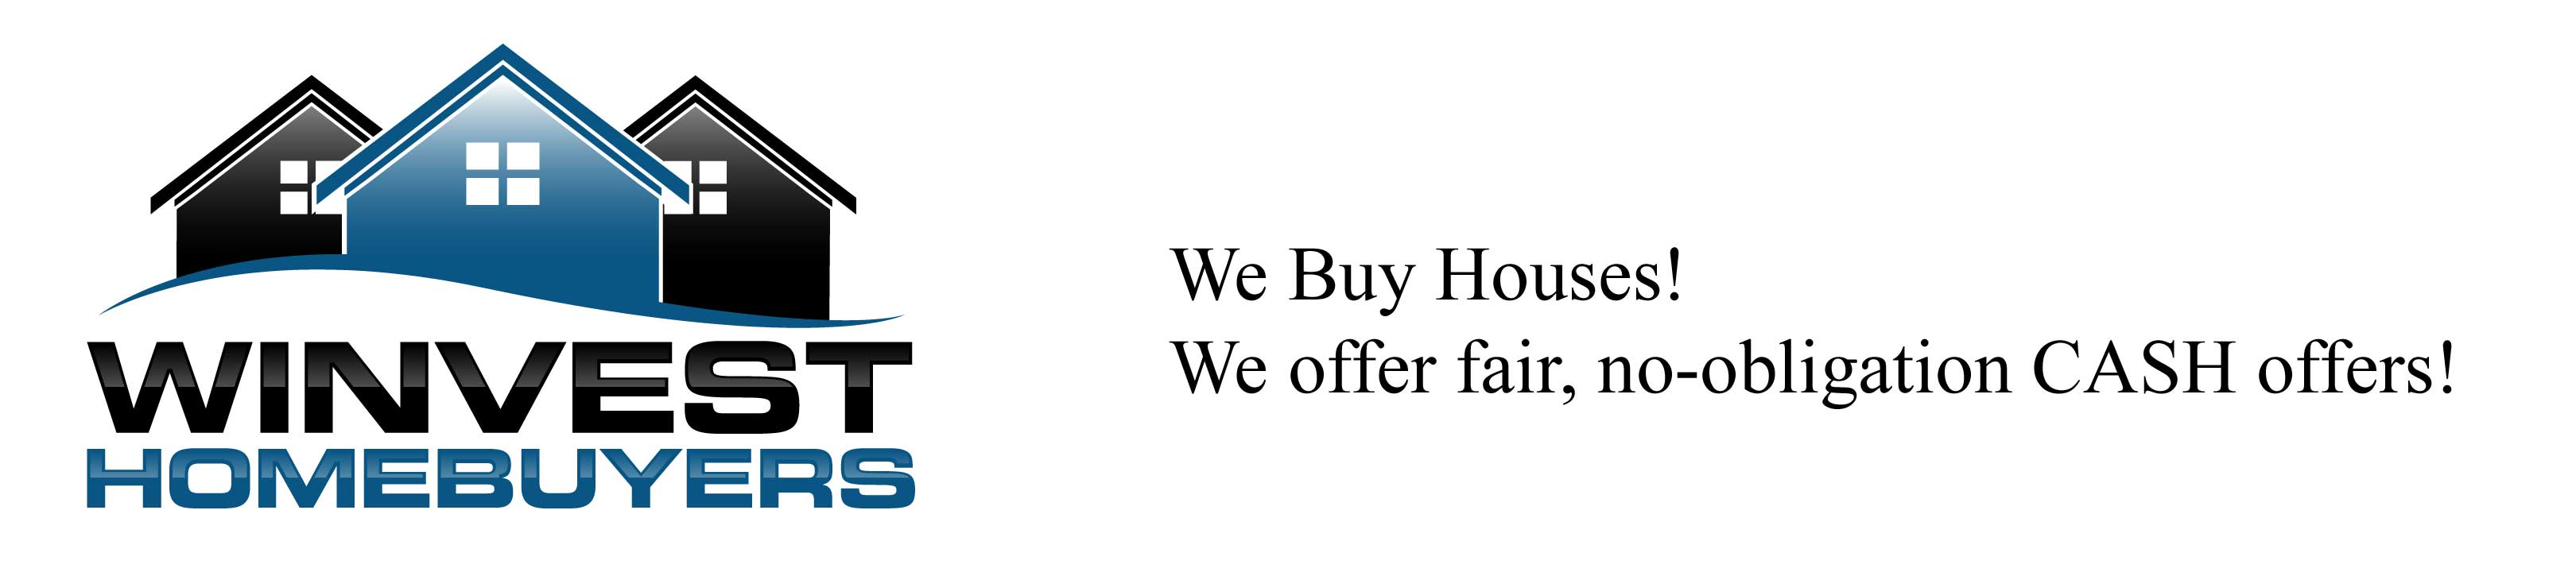 We Buy Houses In Milwaukee Sell Your House Fast Milwaukee